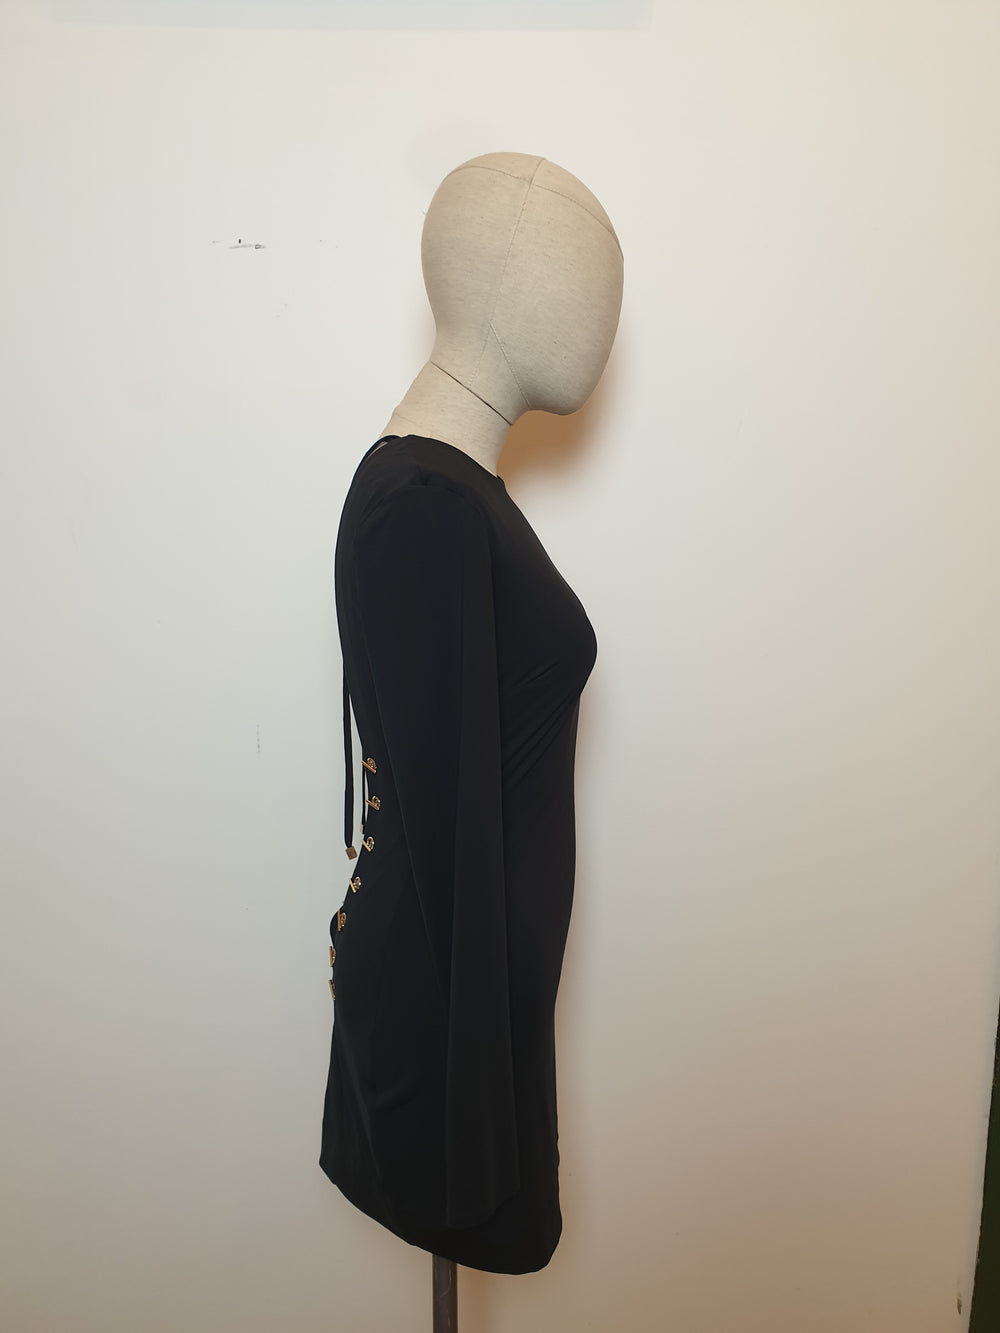 House Of London Elasticated Fitted Backless Little Black Dress Size Small - Siopaella Designer Exchange